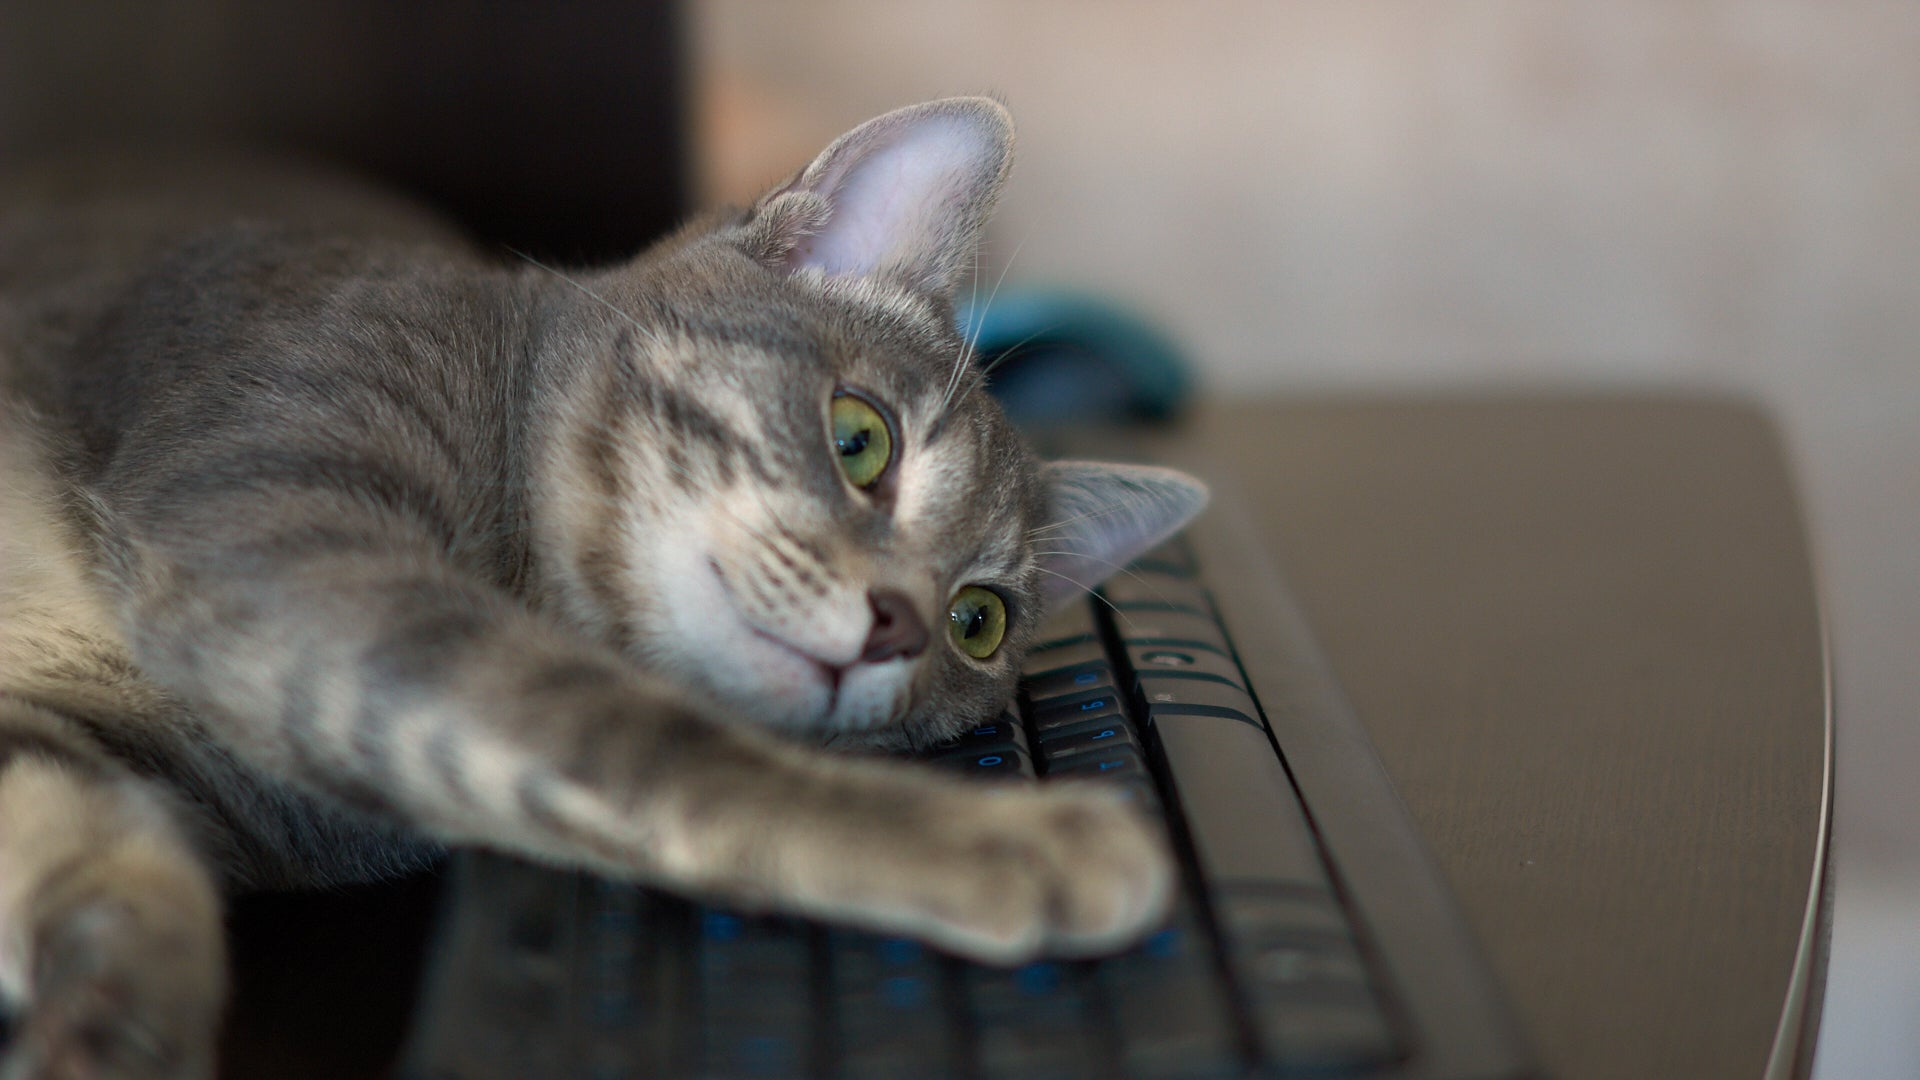 Get A Decoy Keyboard For Your Cat To Enjoy